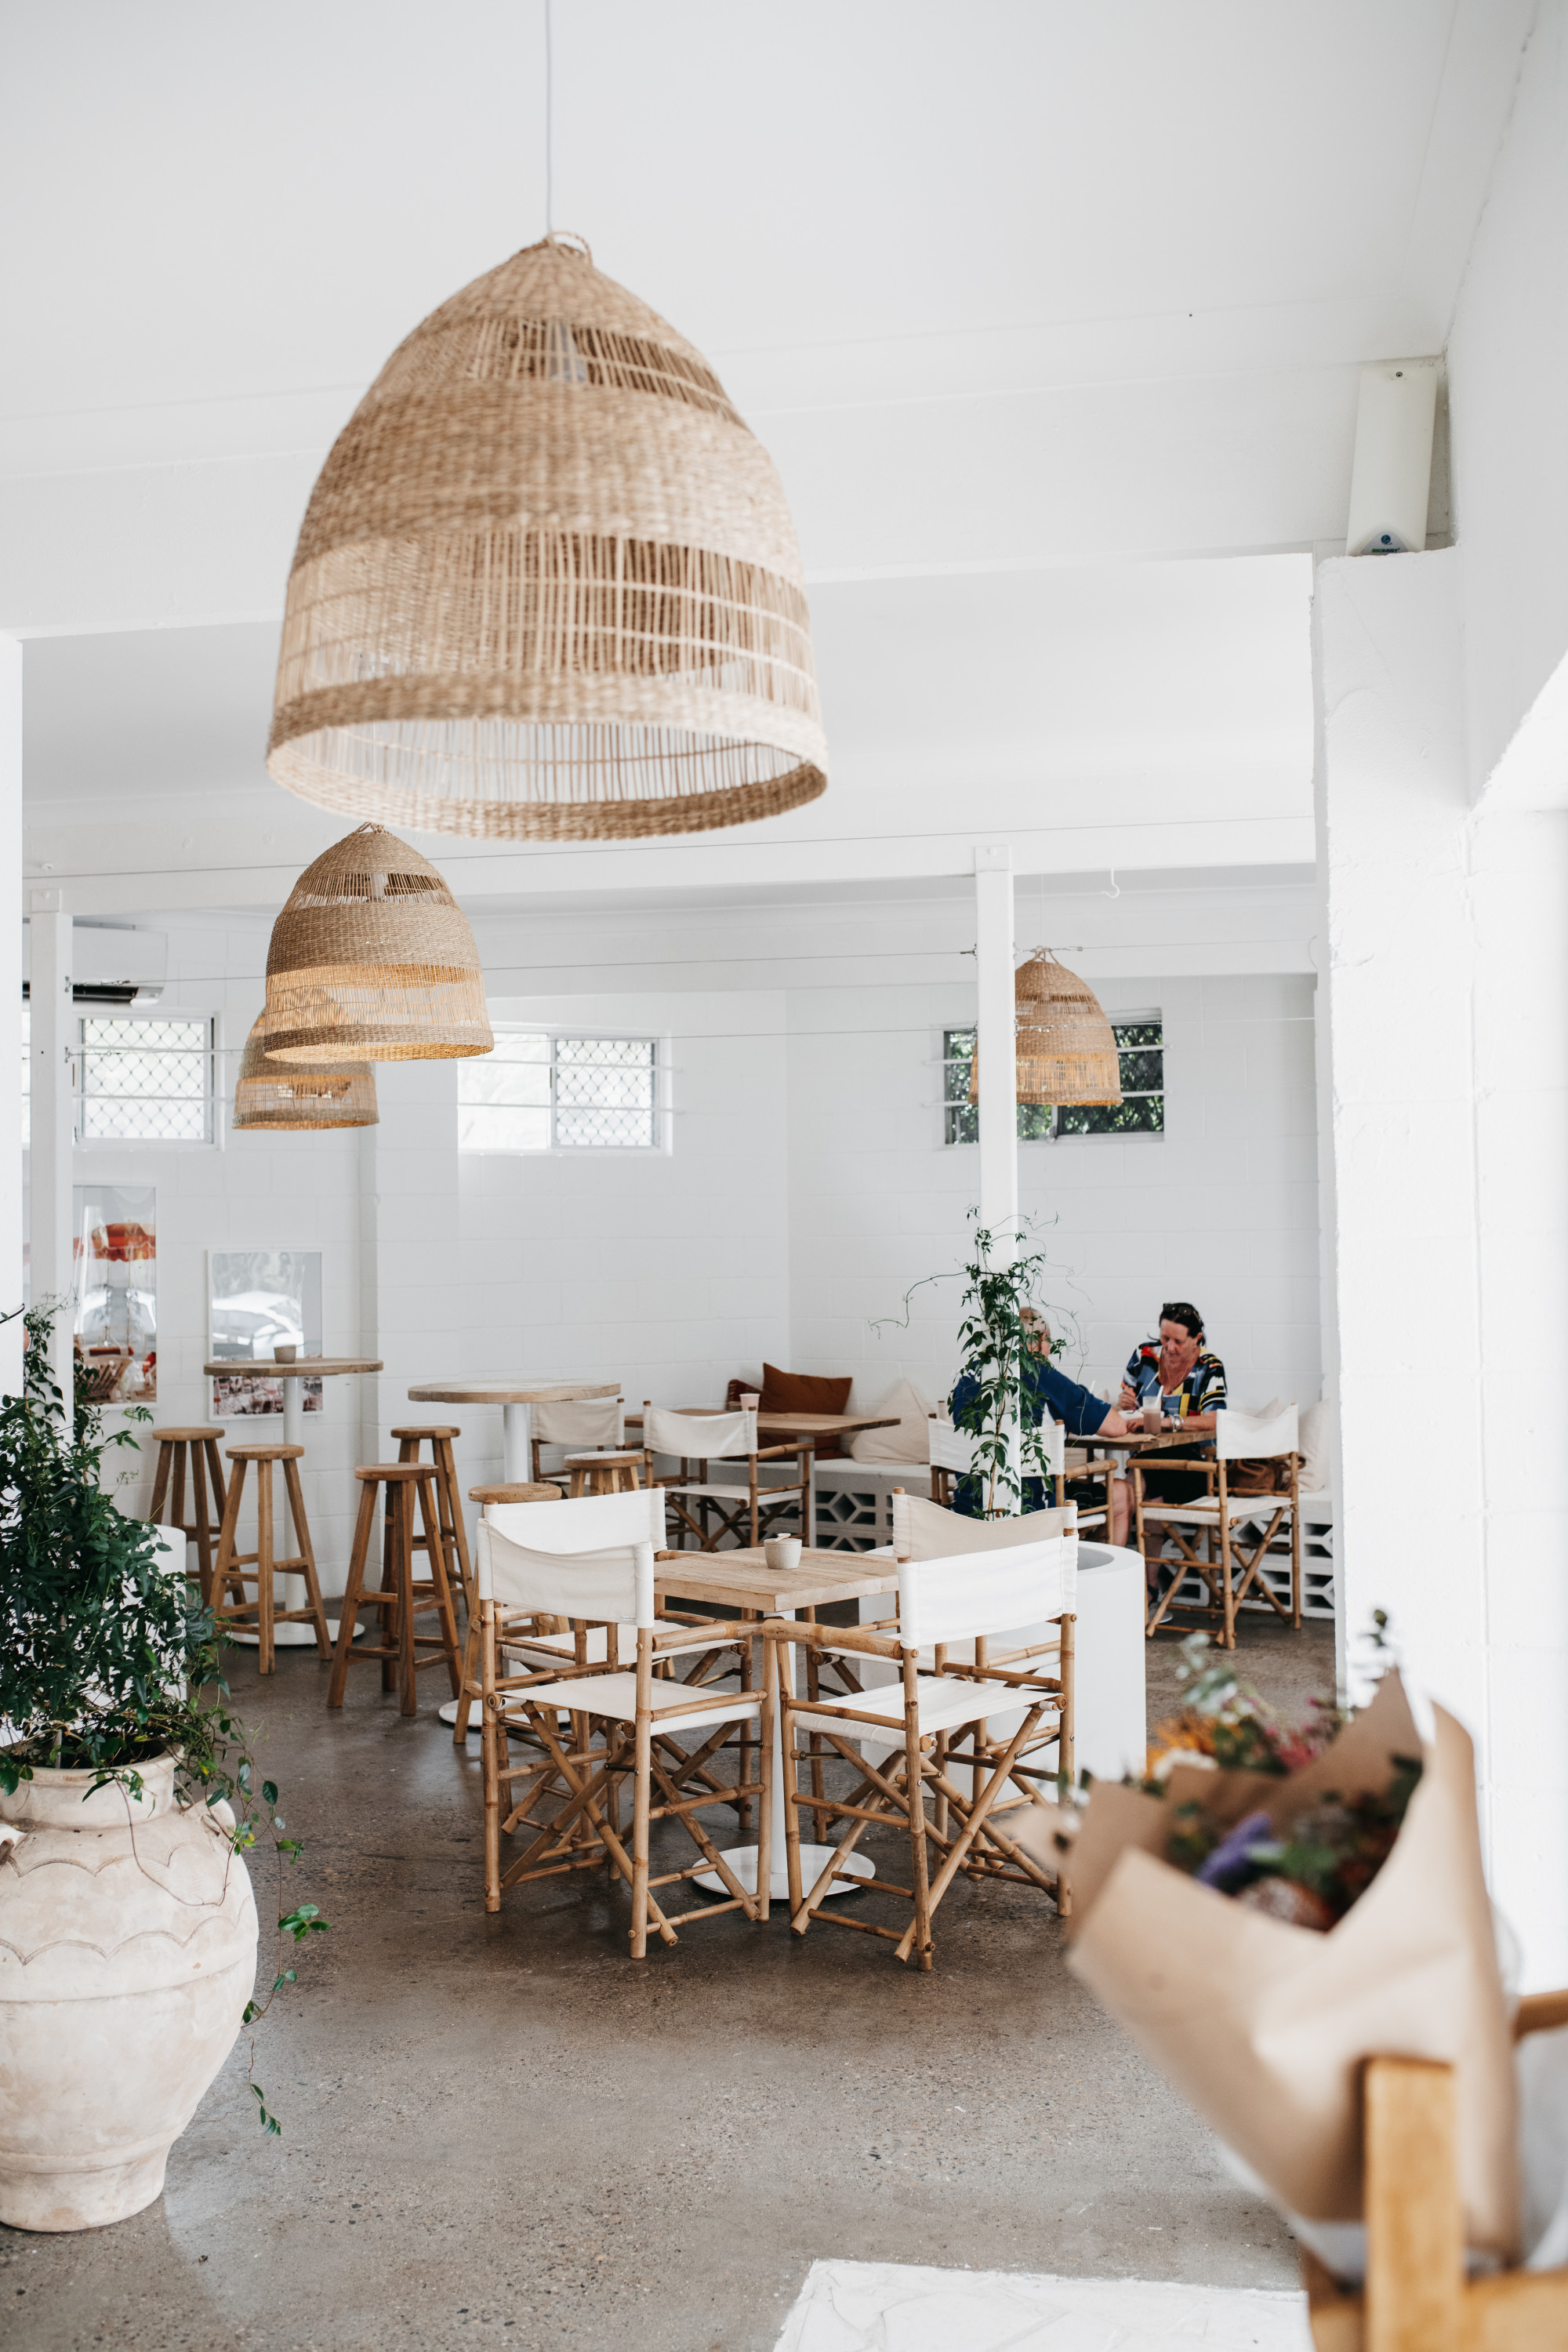 the beautiful interior of a cafe